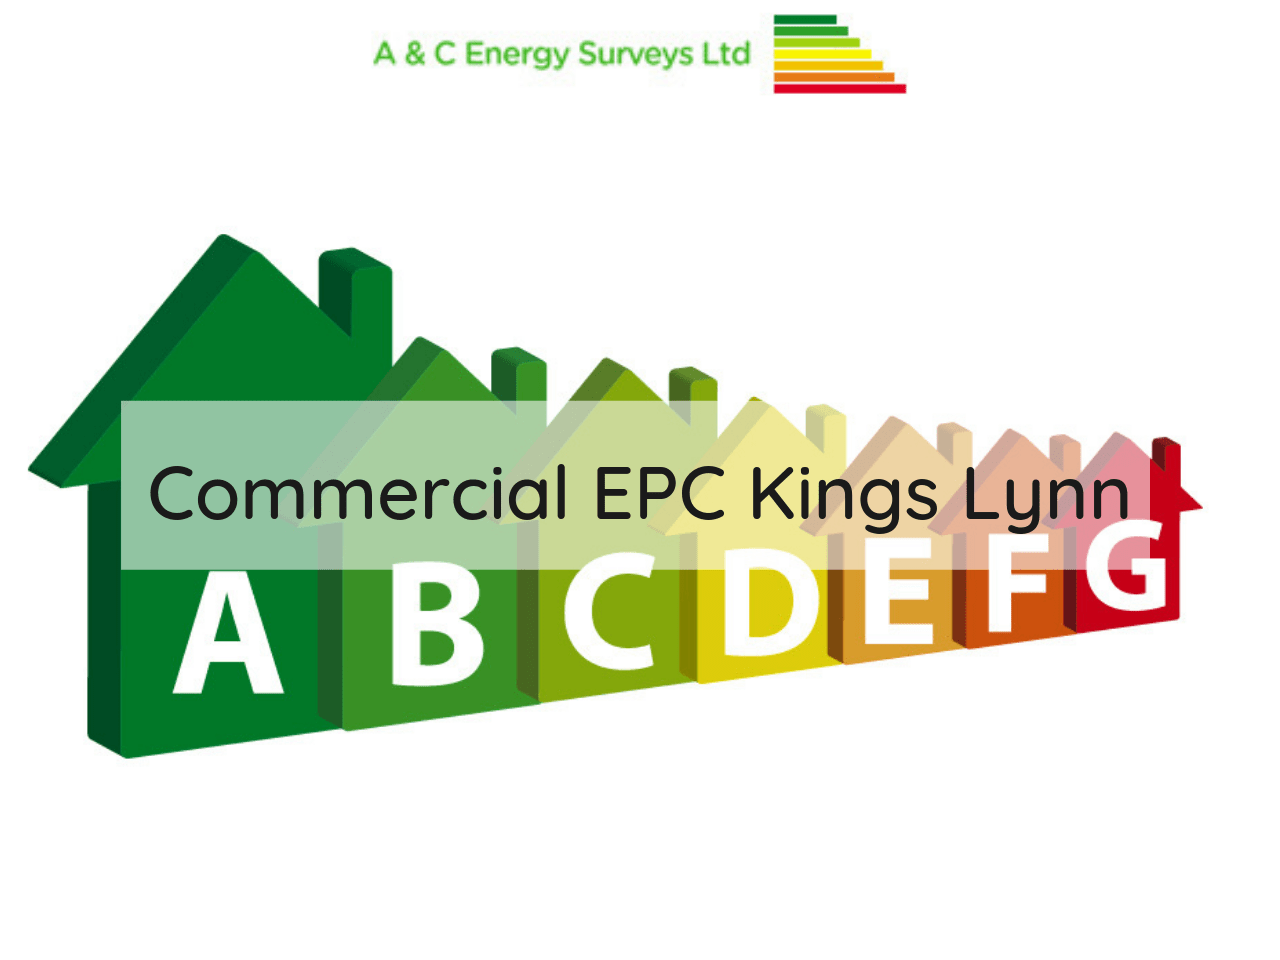 Commercial EPC Kings Lynn